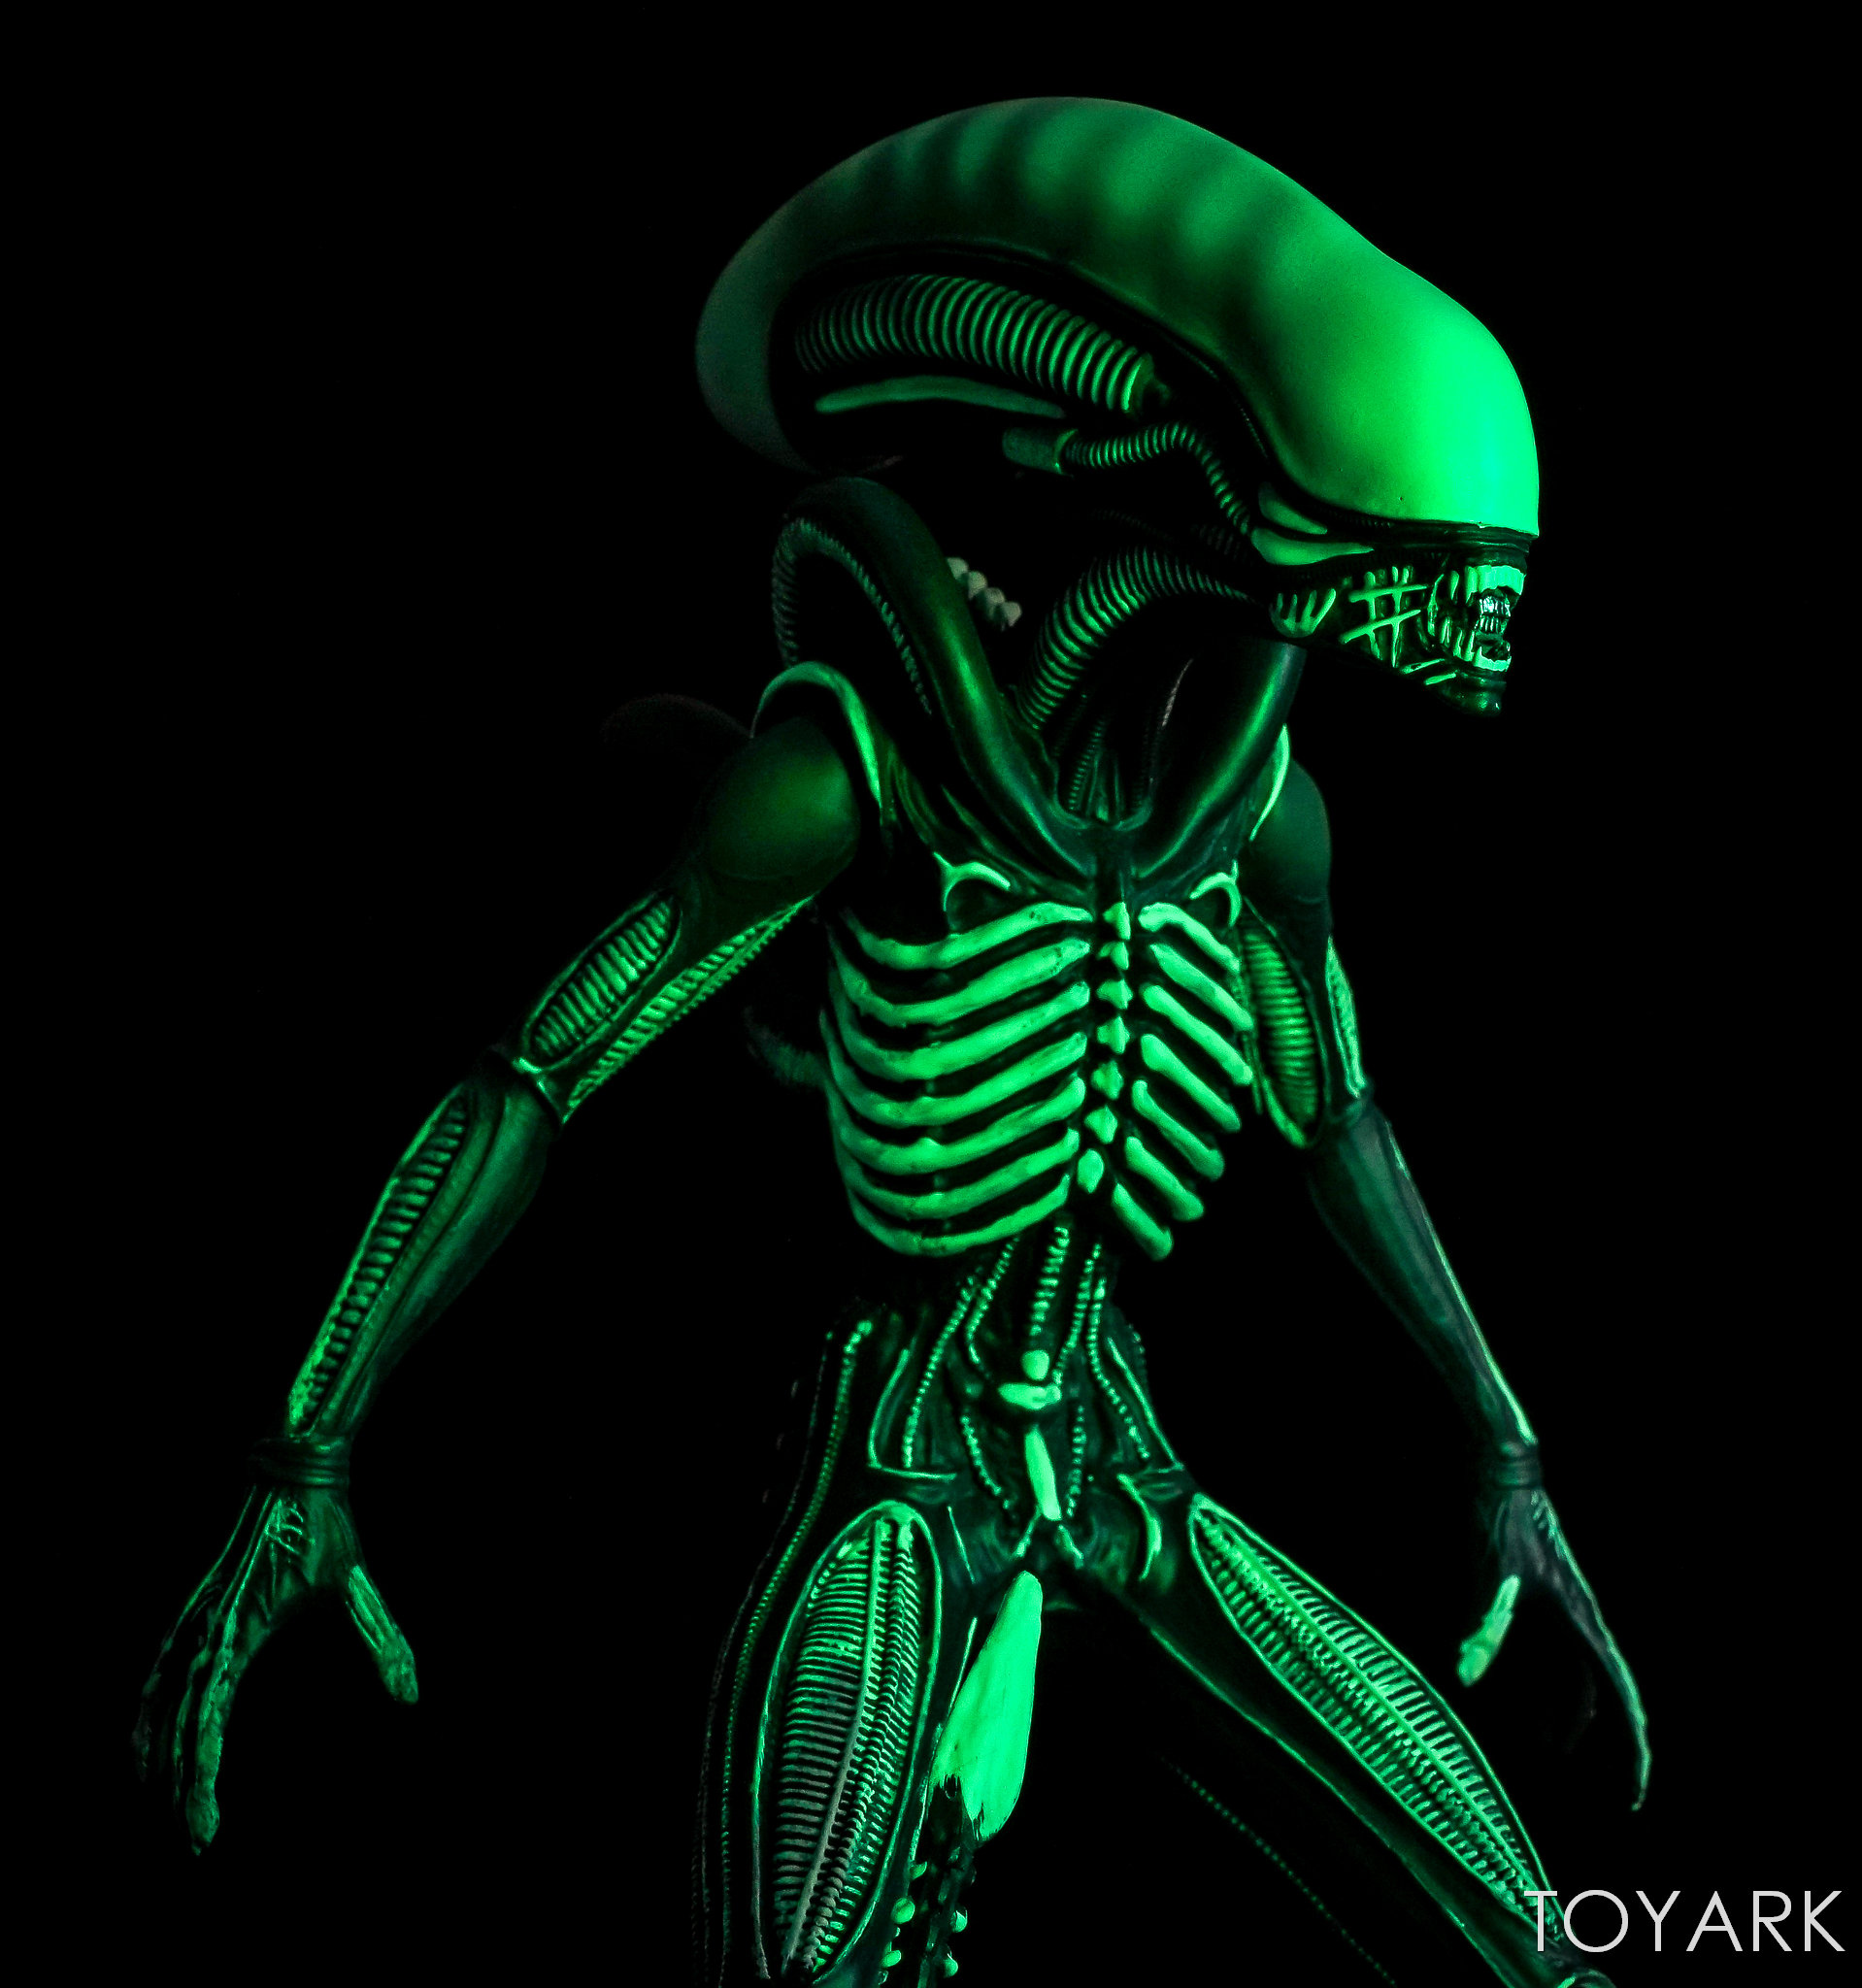 http://news.toyark.com/wp-content/uploads/sites/4/2017/12/Eaglemoss-Glow-in-the-Dark-Alien-Statue-024.jpg